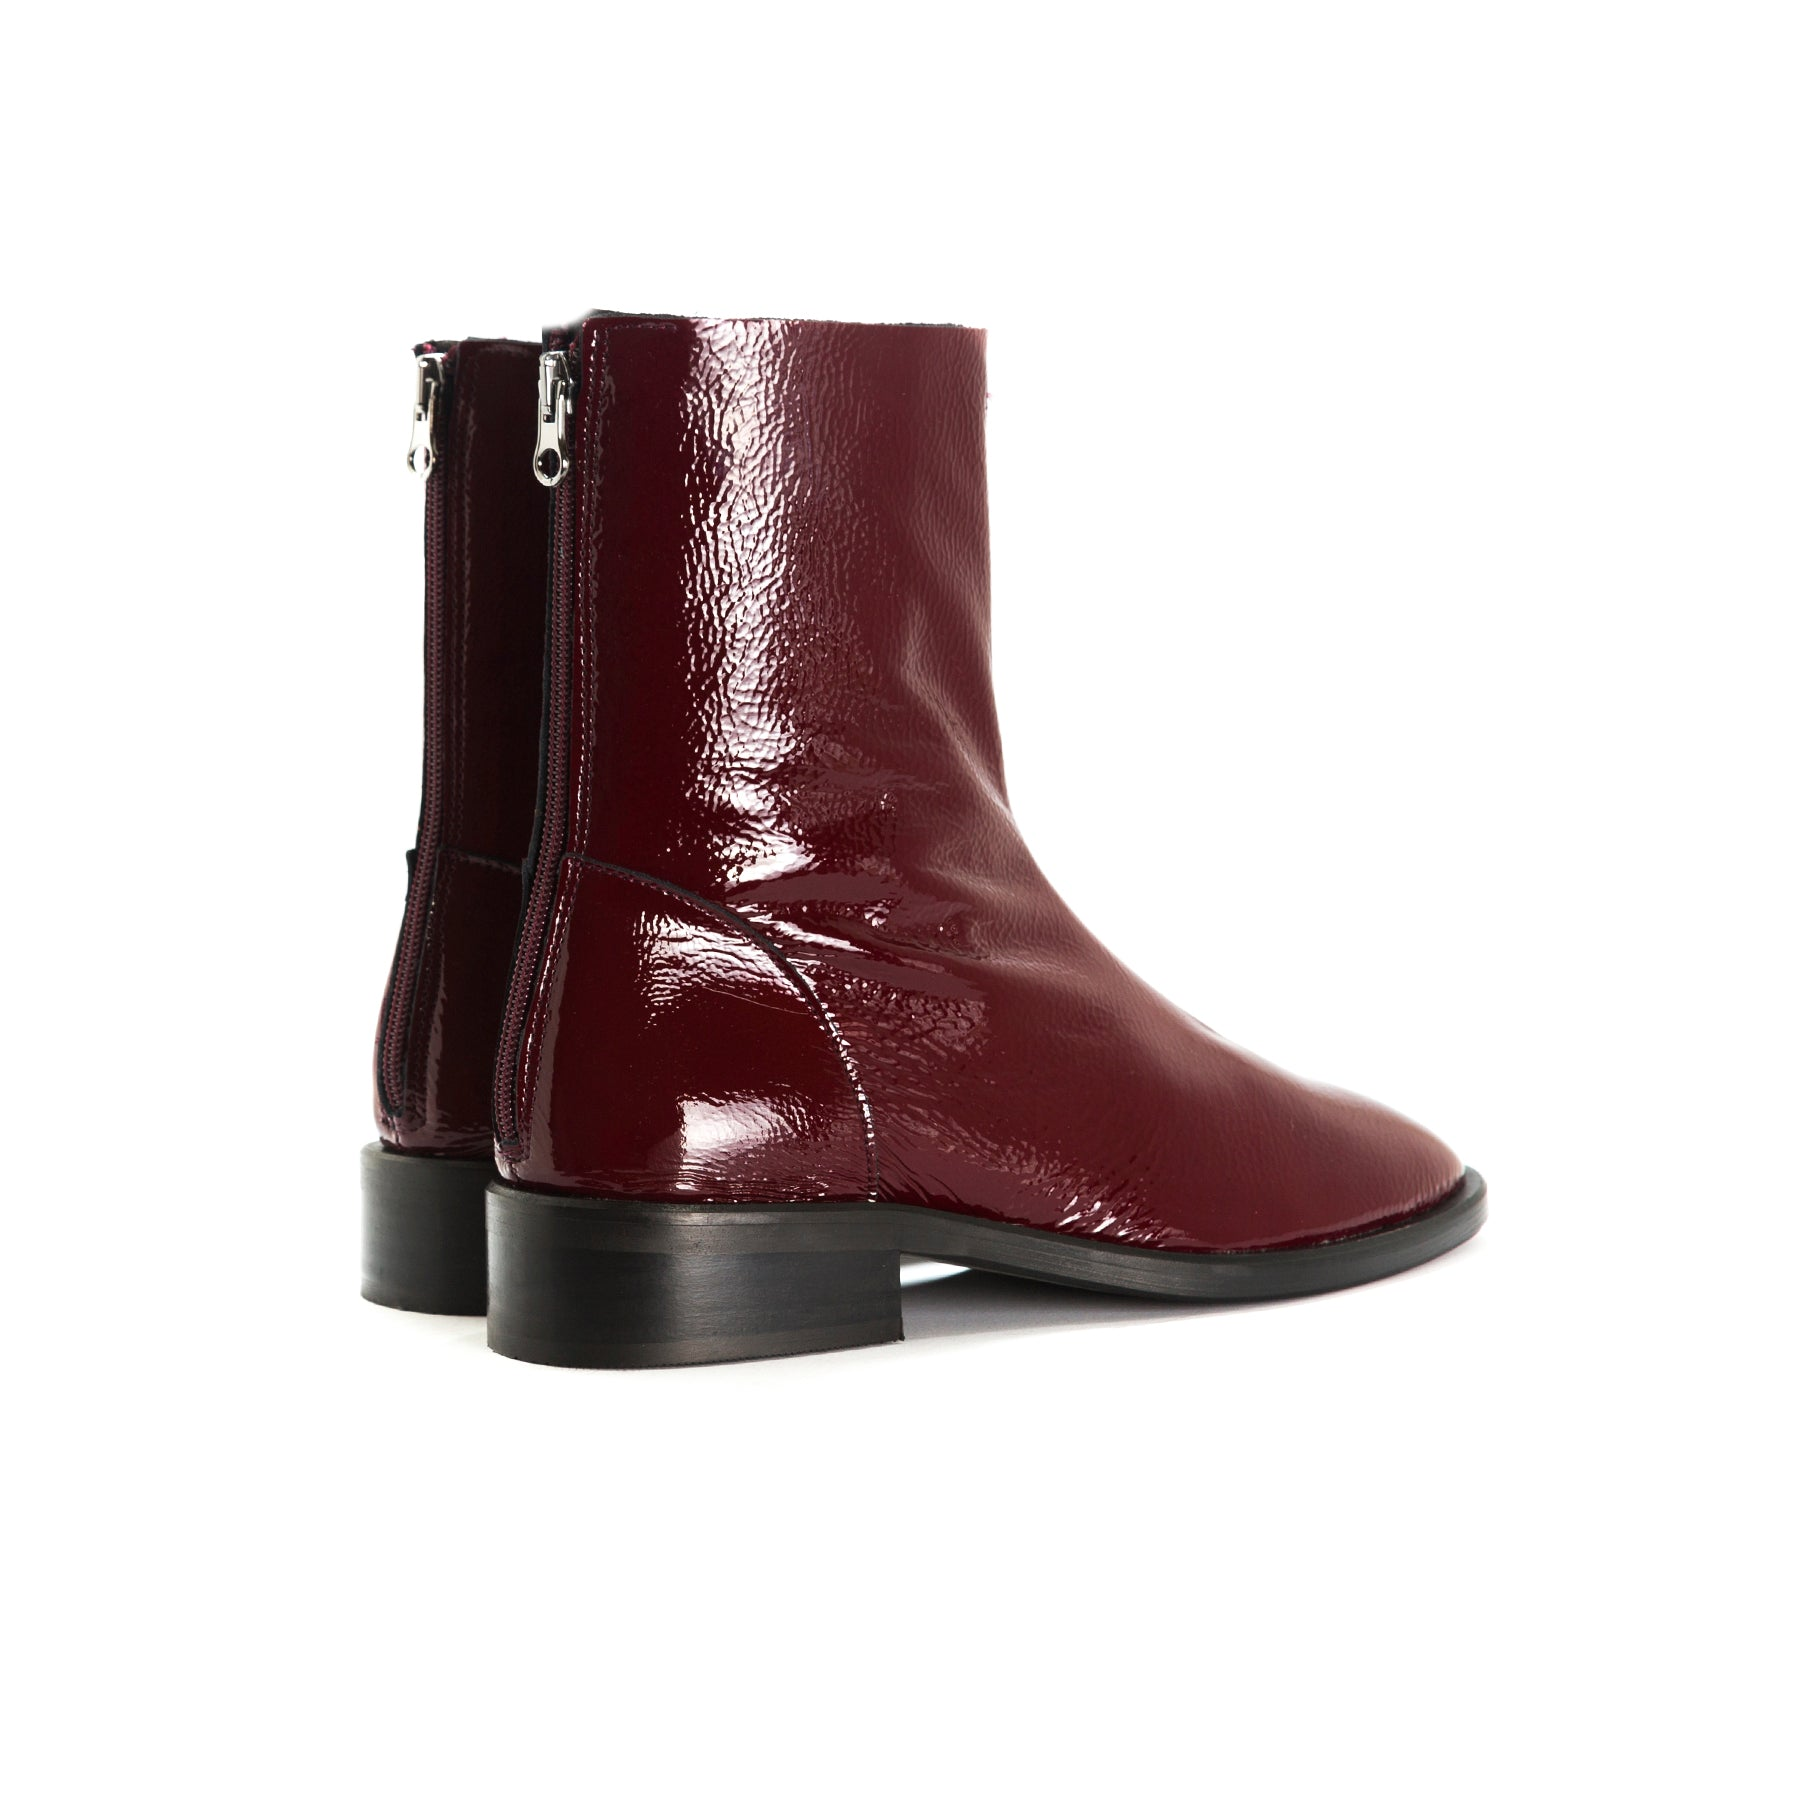 Dalton Red Naplack Ankle Boots